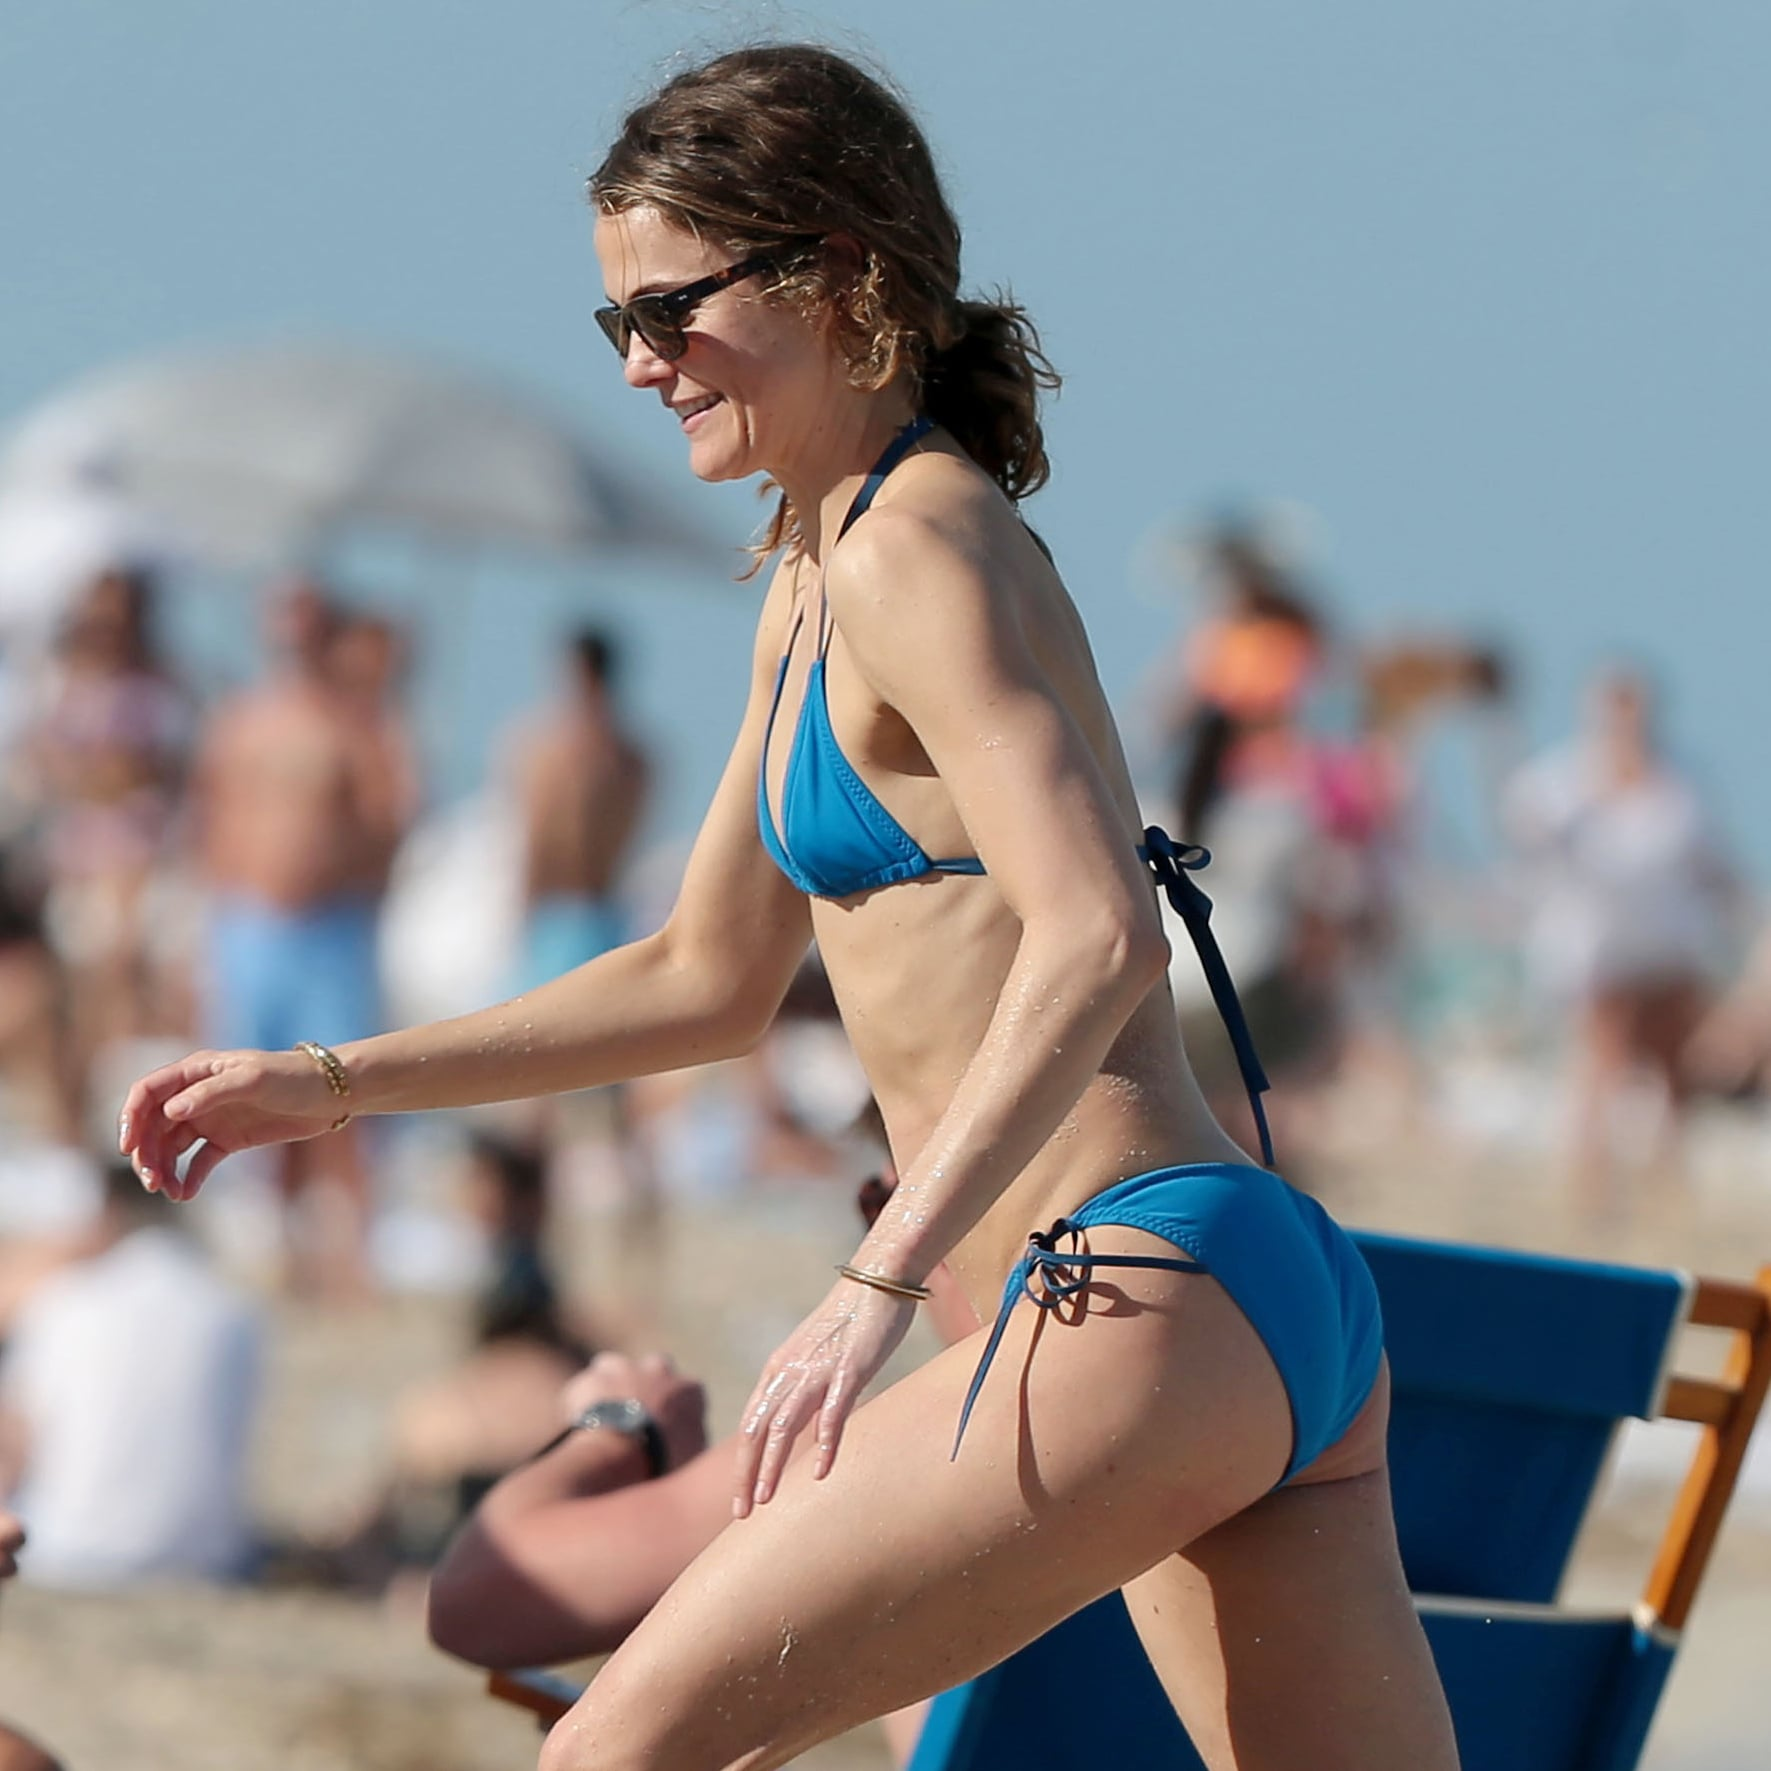 Bikini Bikini Keri Russell naked photo 2017